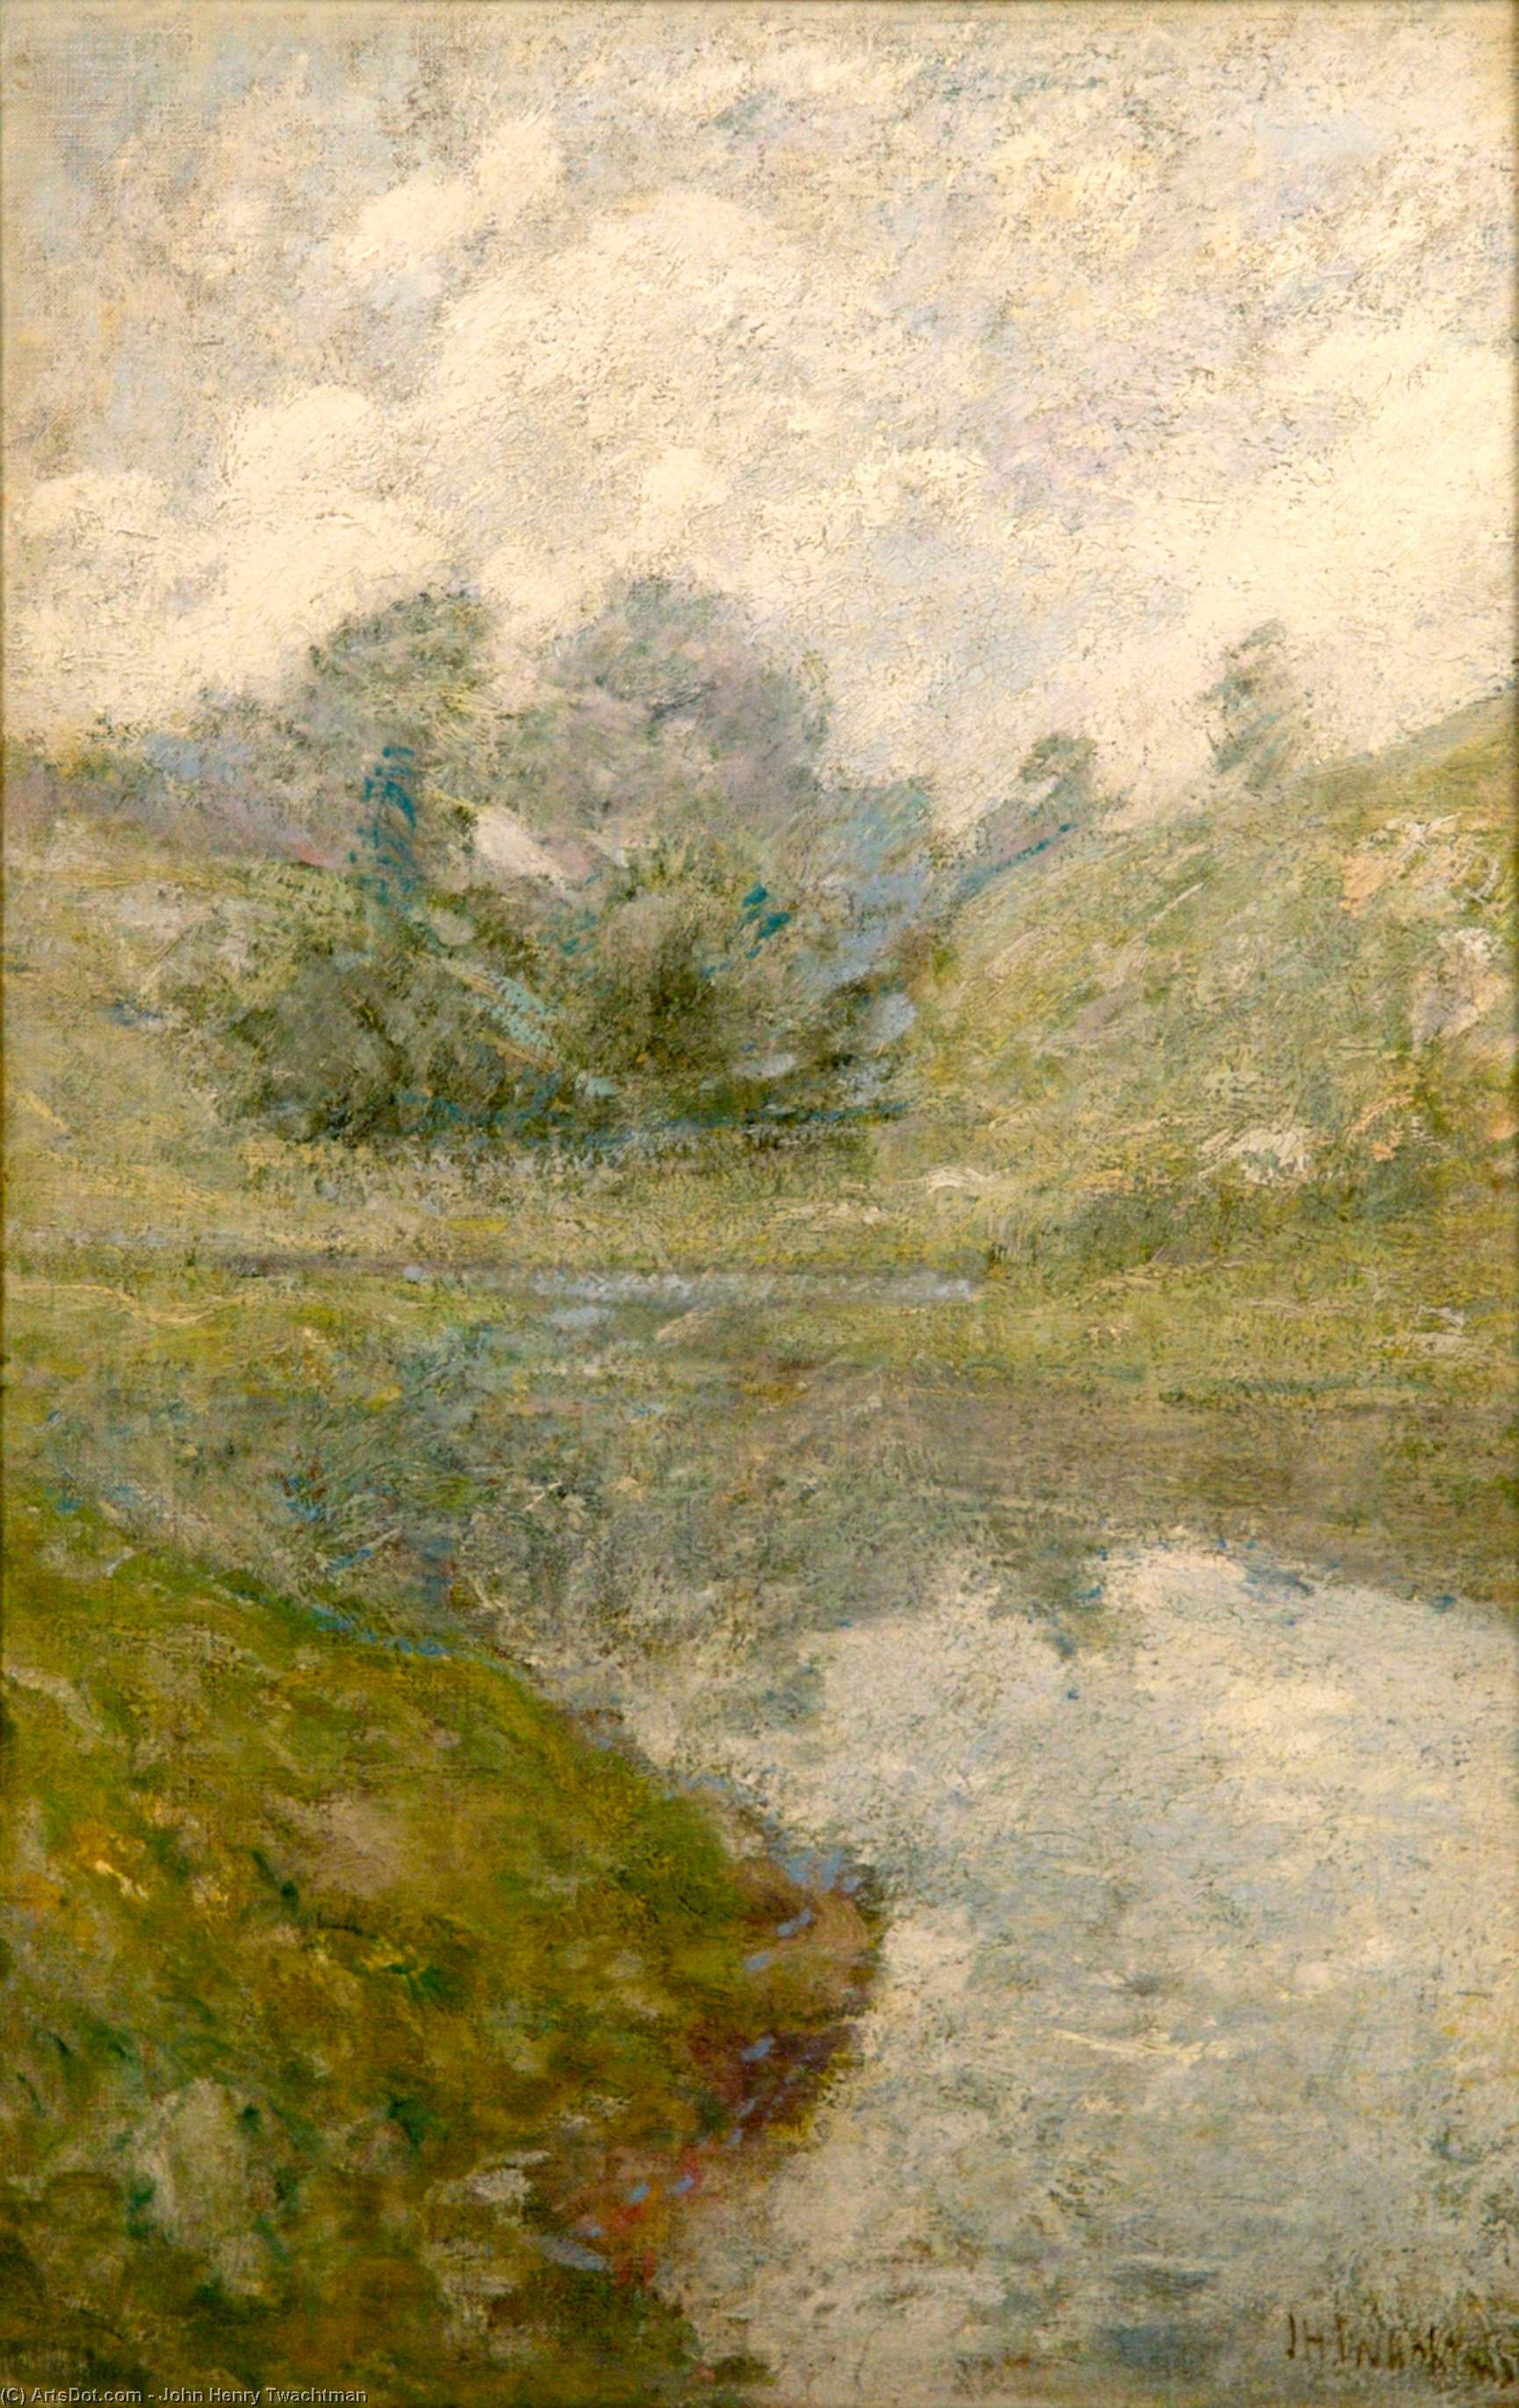 Wikioo.org - The Encyclopedia of Fine Arts - Painting, Artwork by John Henry Twachtman - Landscape 3